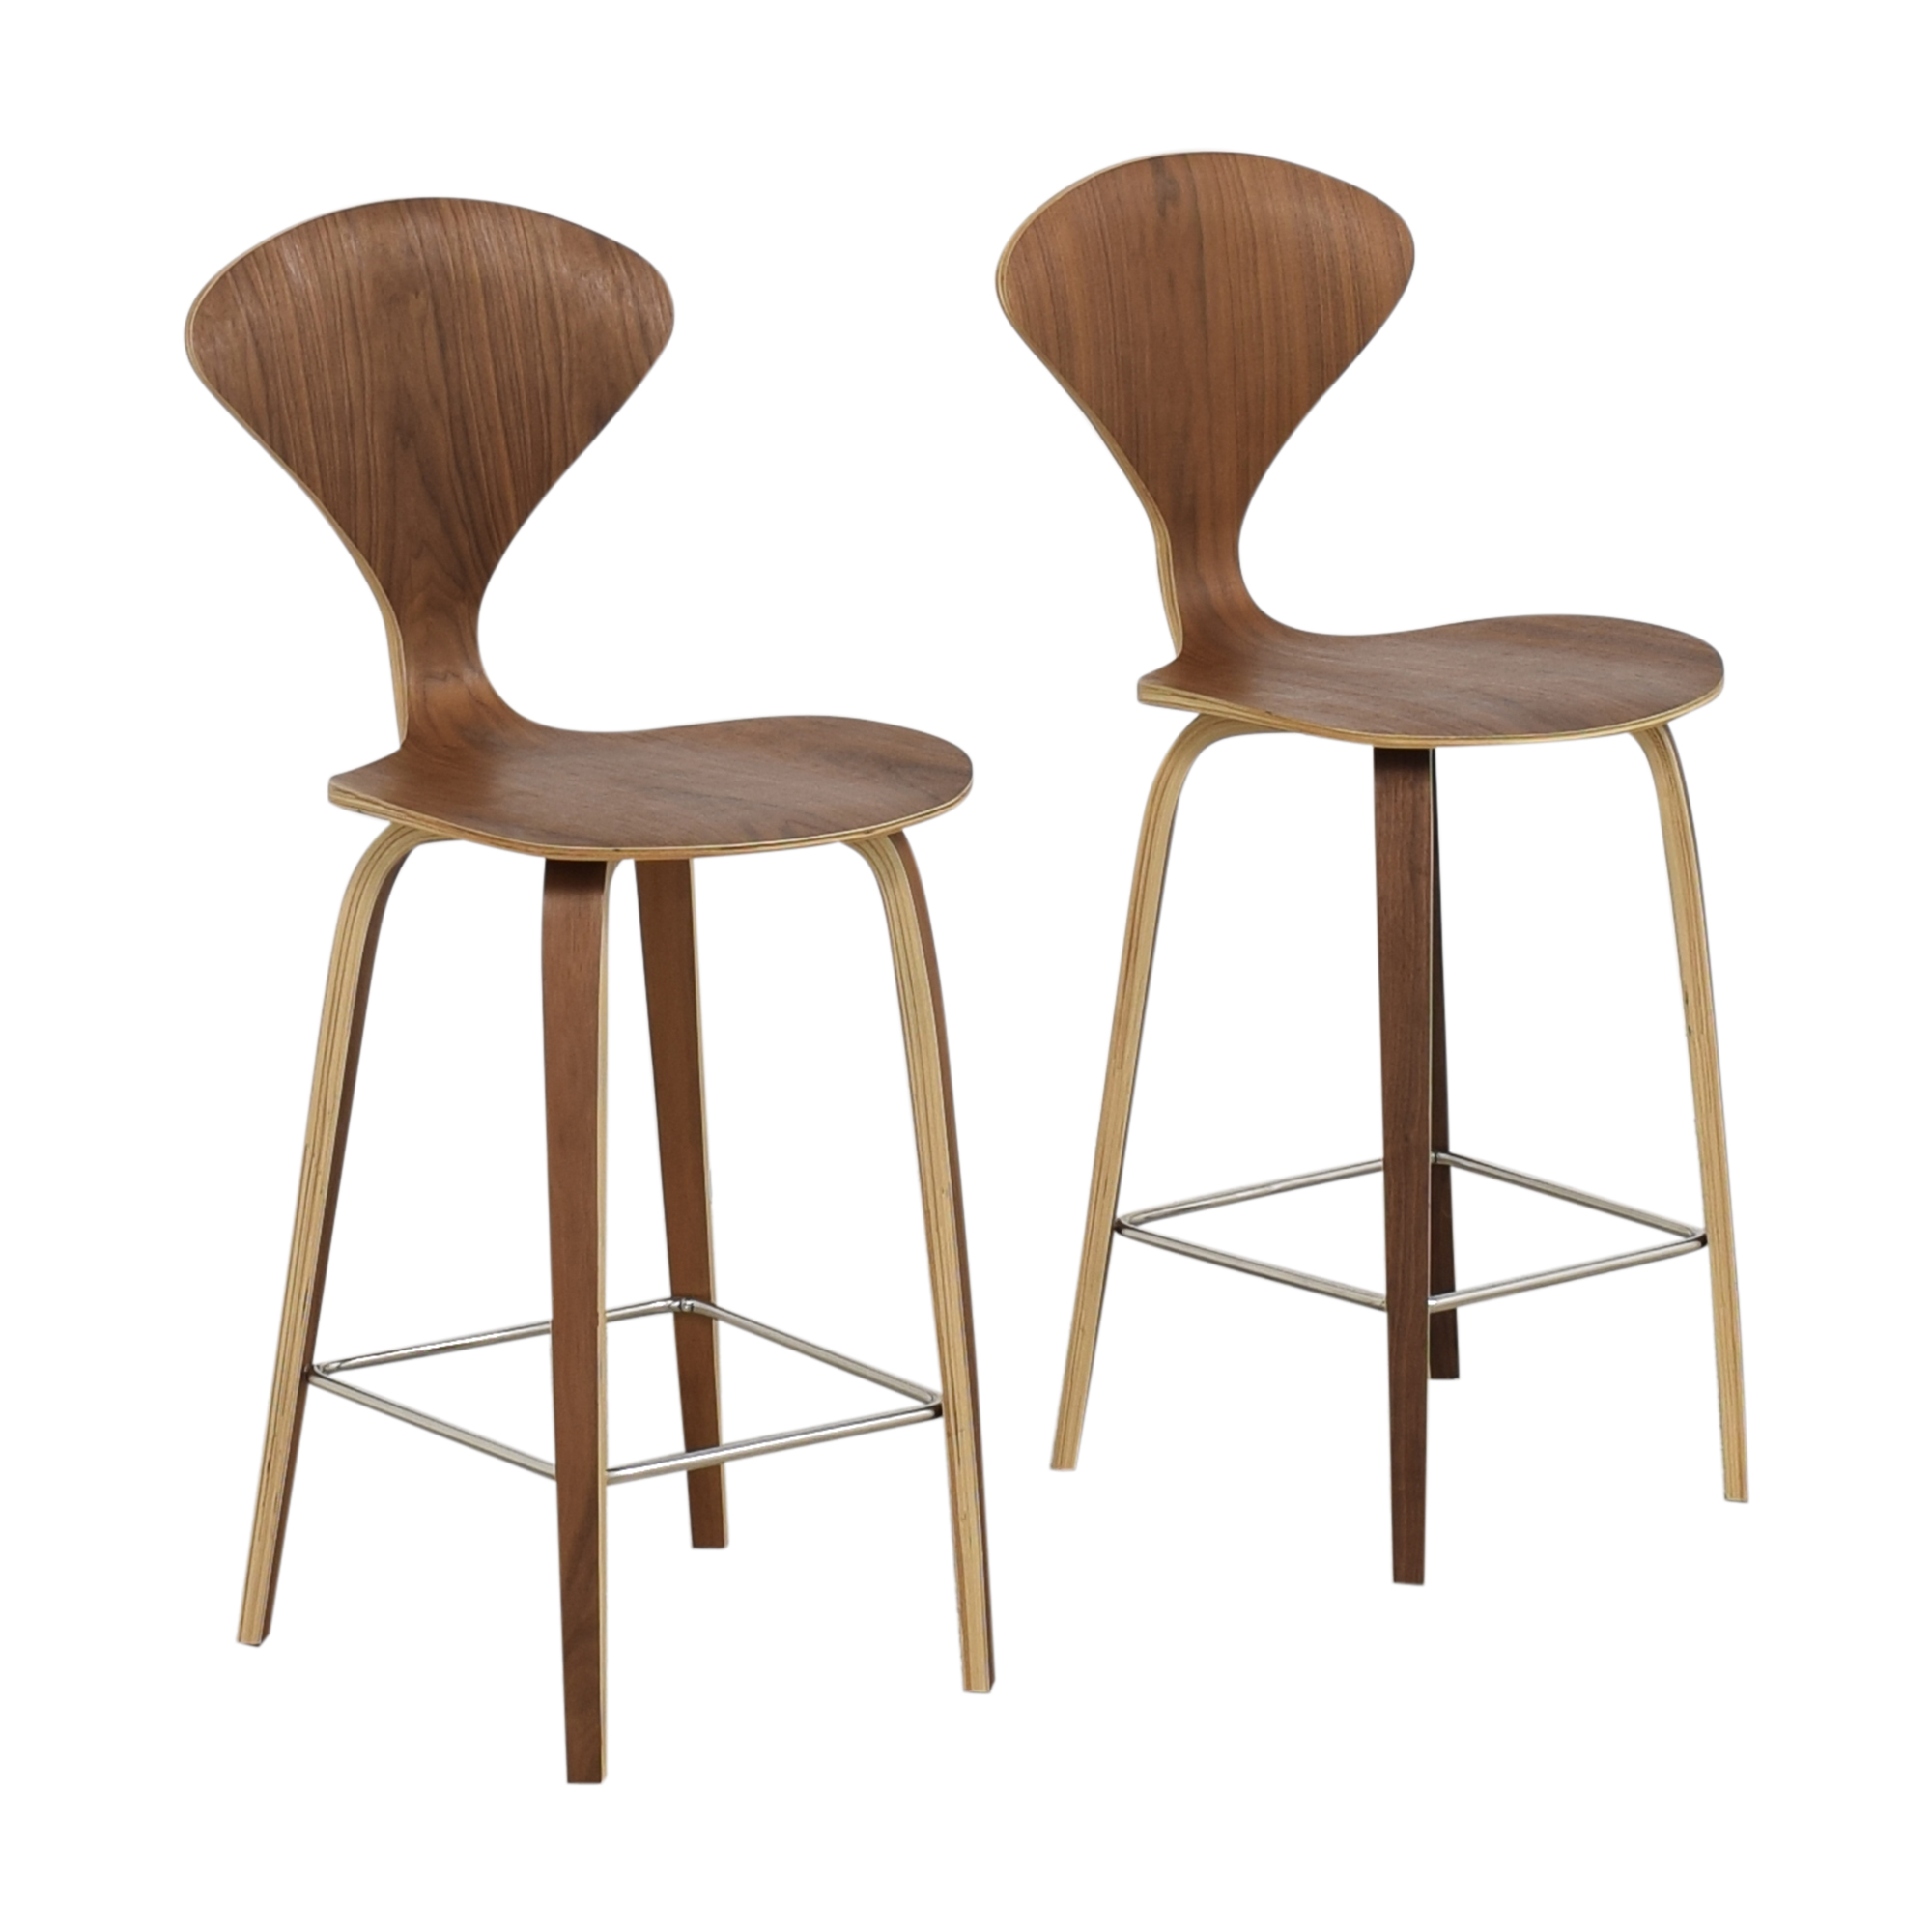 Rove Concepts Norman Counter Stools Rove Concepts